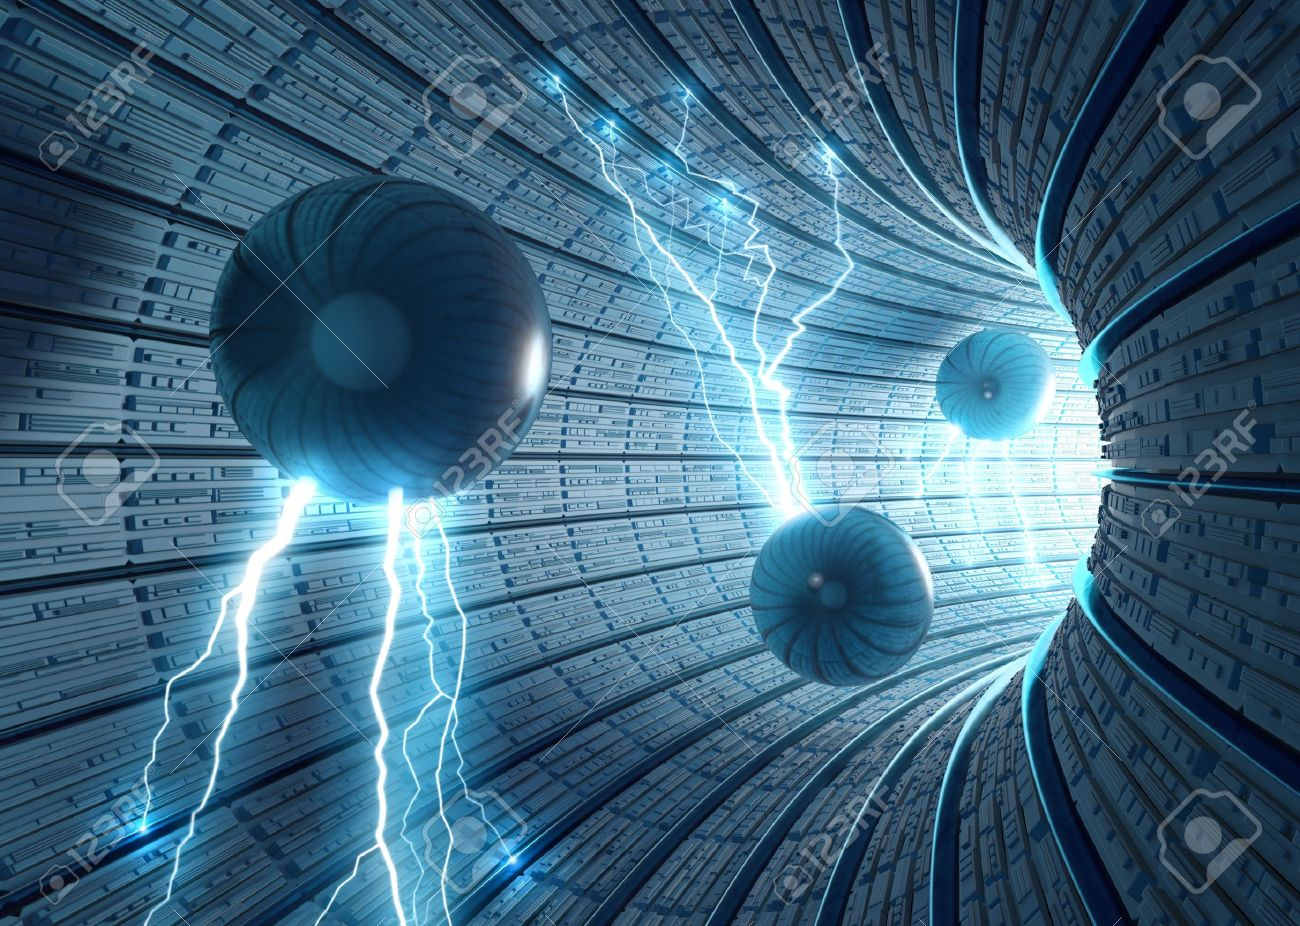 Science Fiction Background. Inside an abstract tunnel with electric spheres. Concept of energy, technology and science. - 6798090